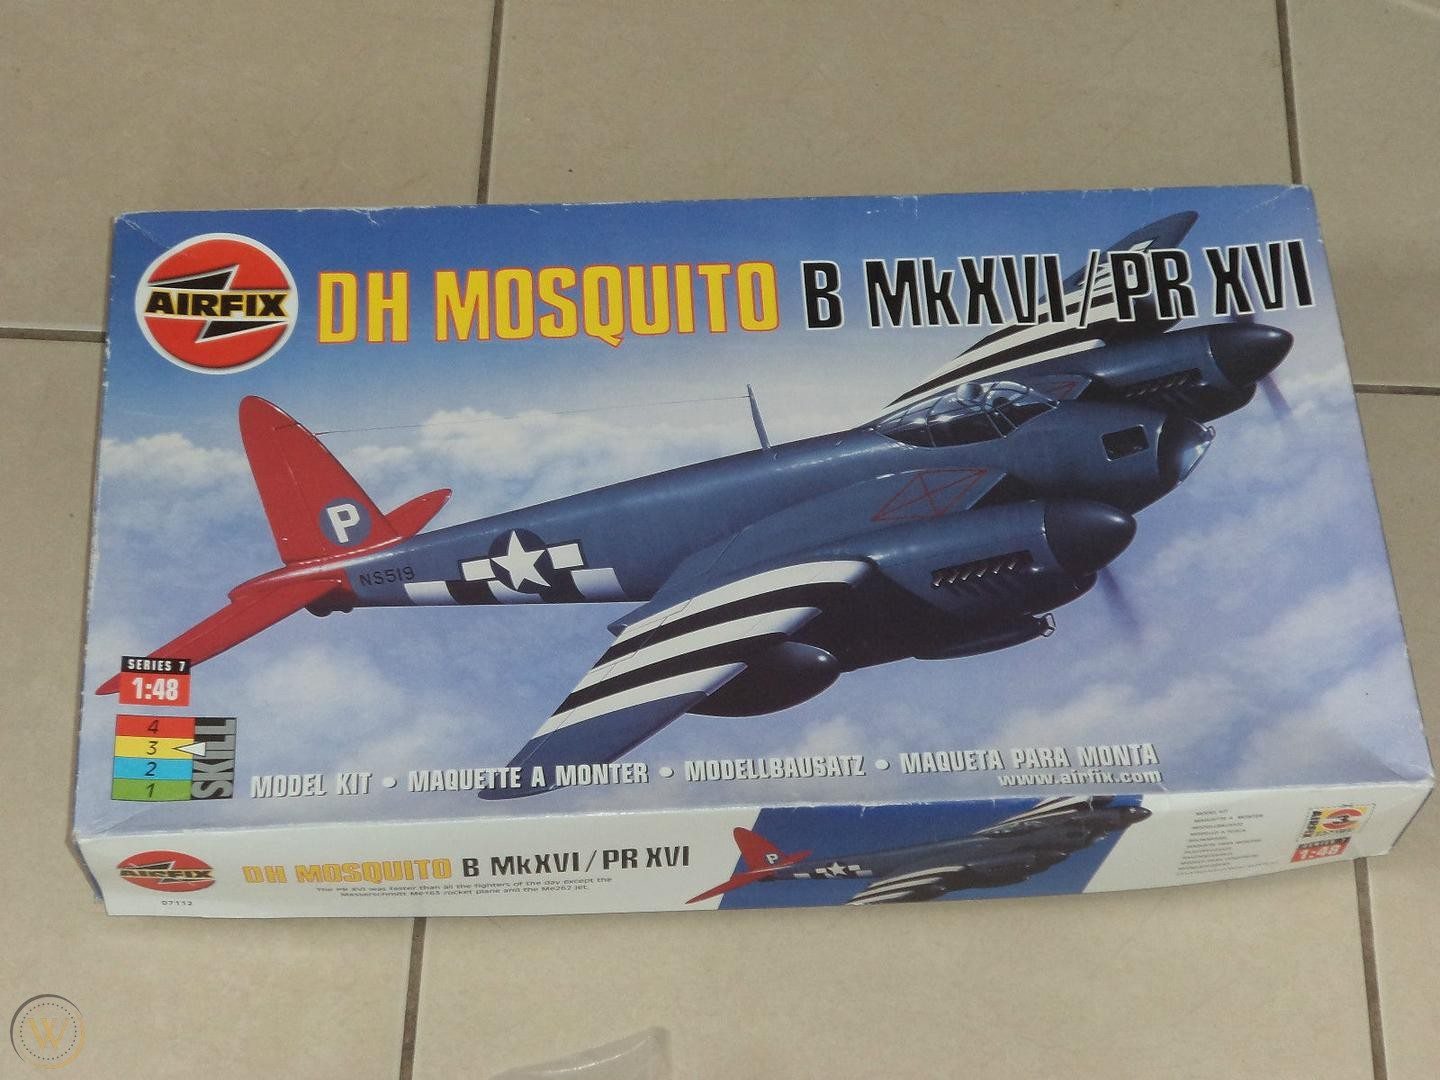 Airfix 1/48 D H MOSQUITO B MKXV1